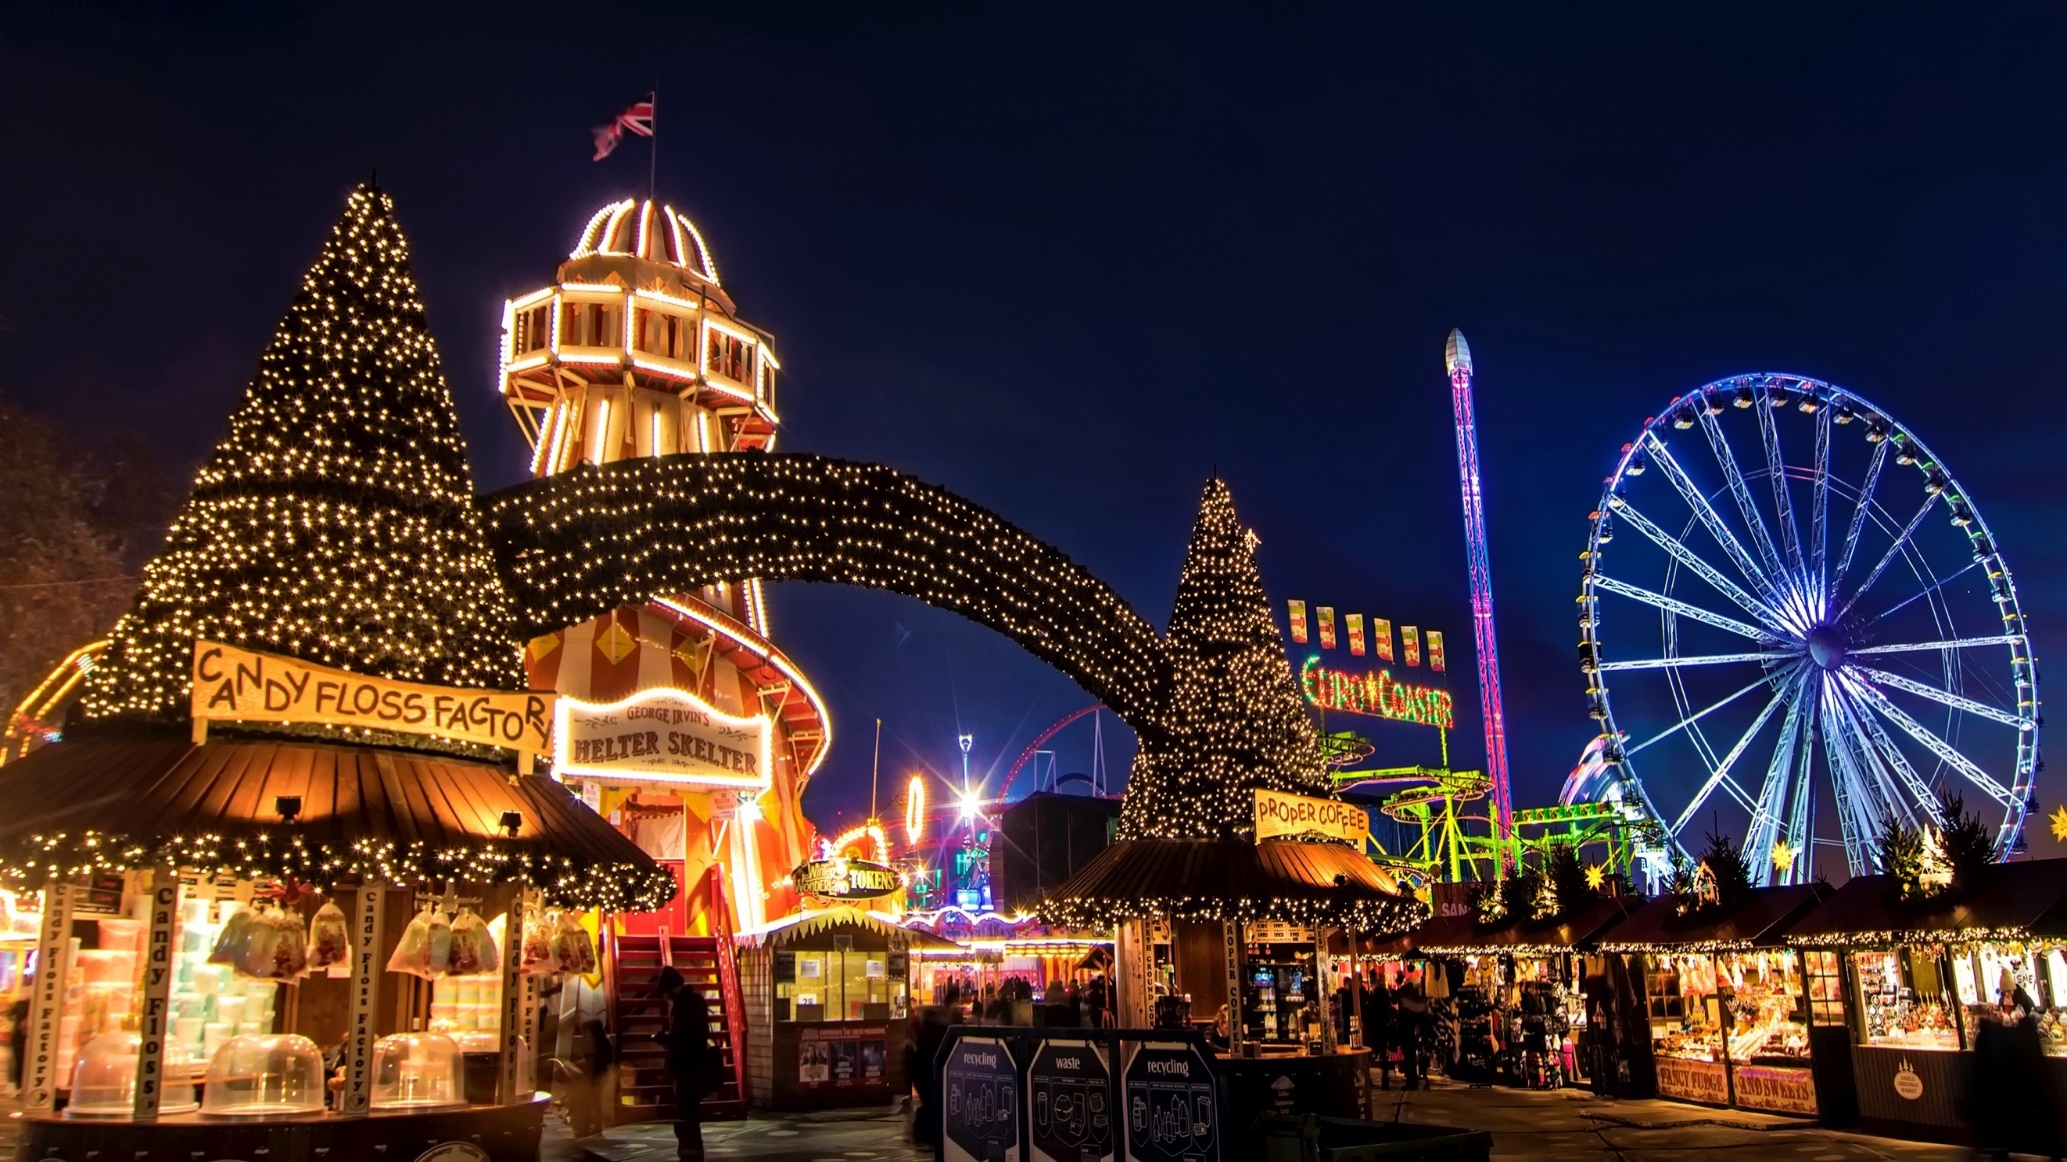 Christmas Markets In Germany 2019 Dates.The Best Uk Christmas Markets 2019 Around The Uk